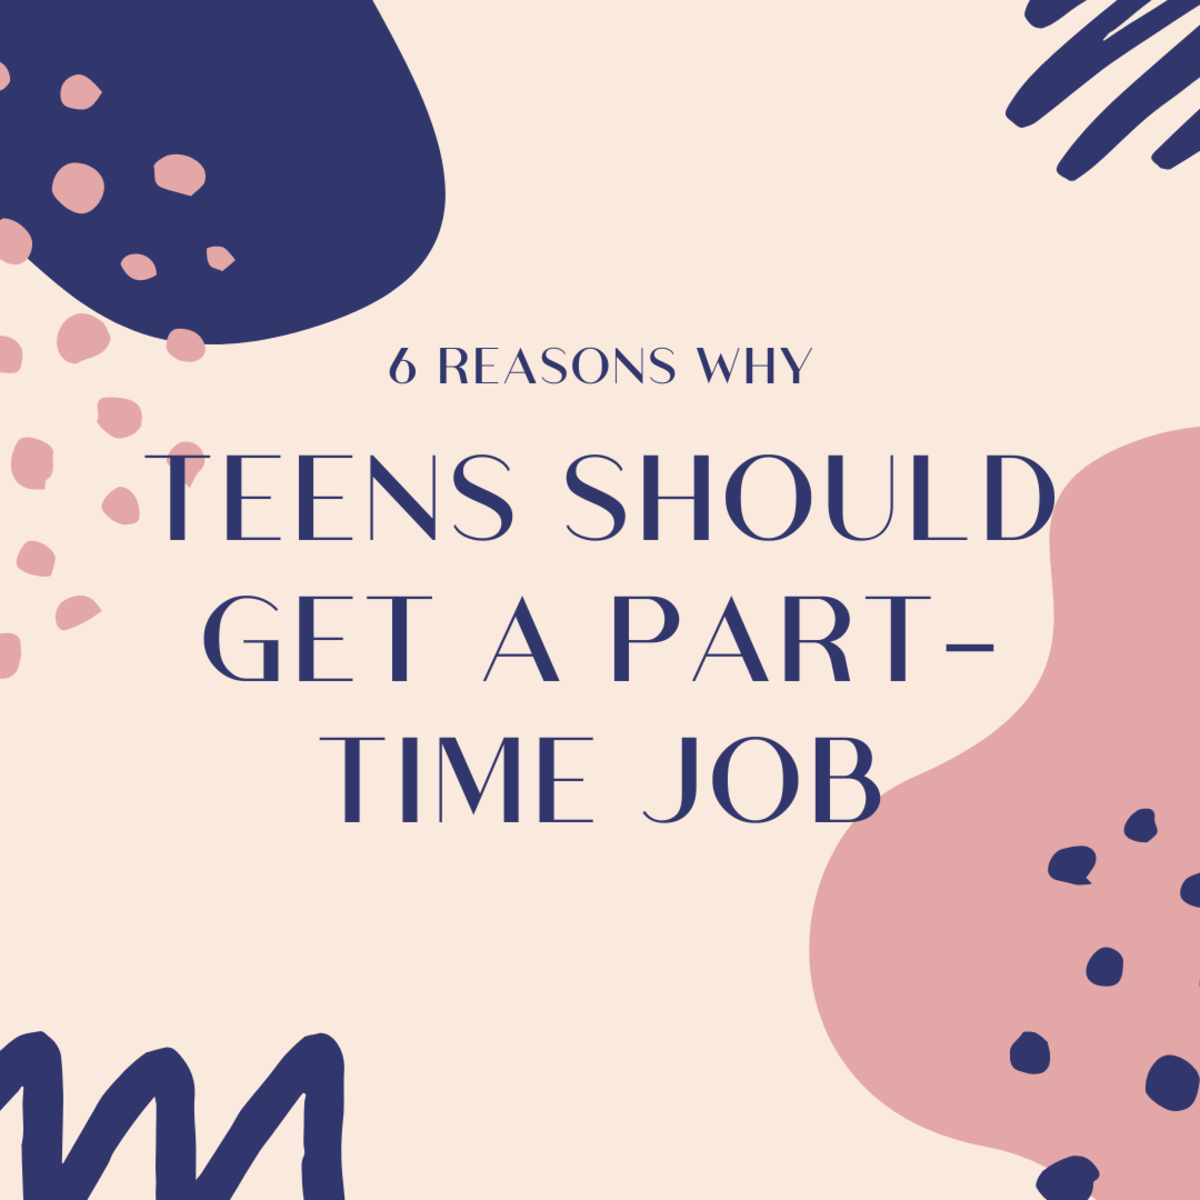 6 Reasons Why a Teenager Should Get a Part-Time Job